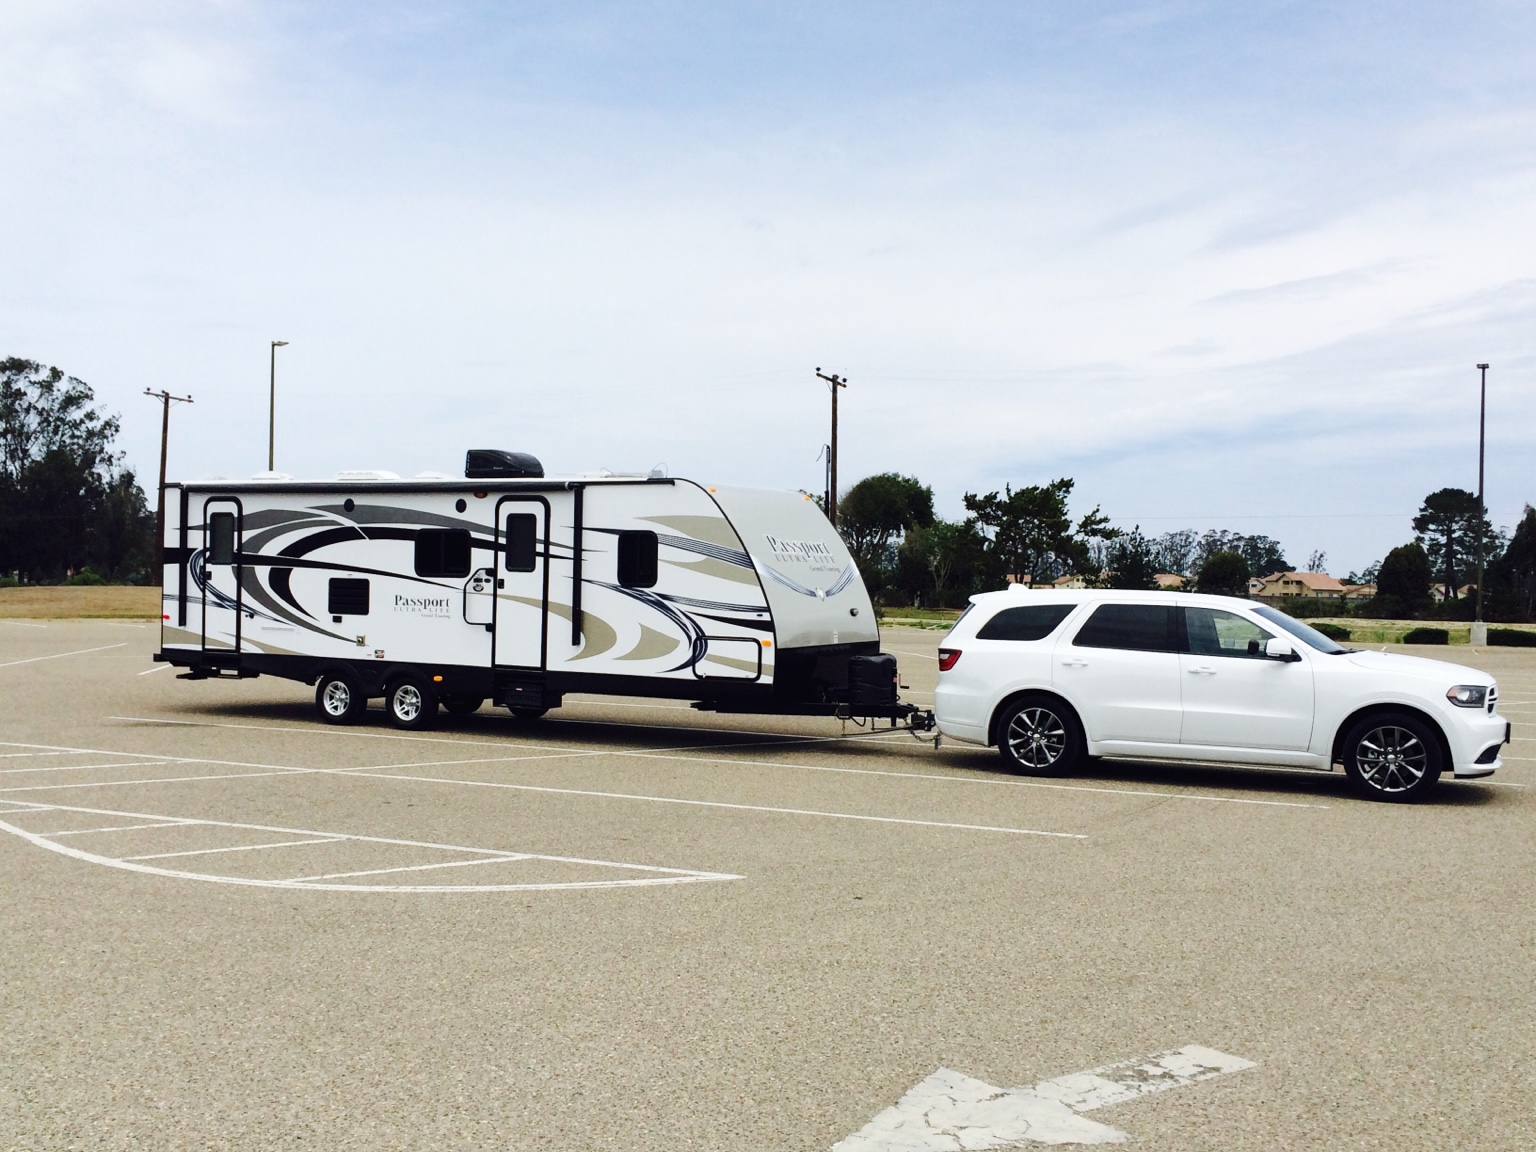 Towing A Travel Trailer With A 2013 Durango R T With 5 7l Hemi